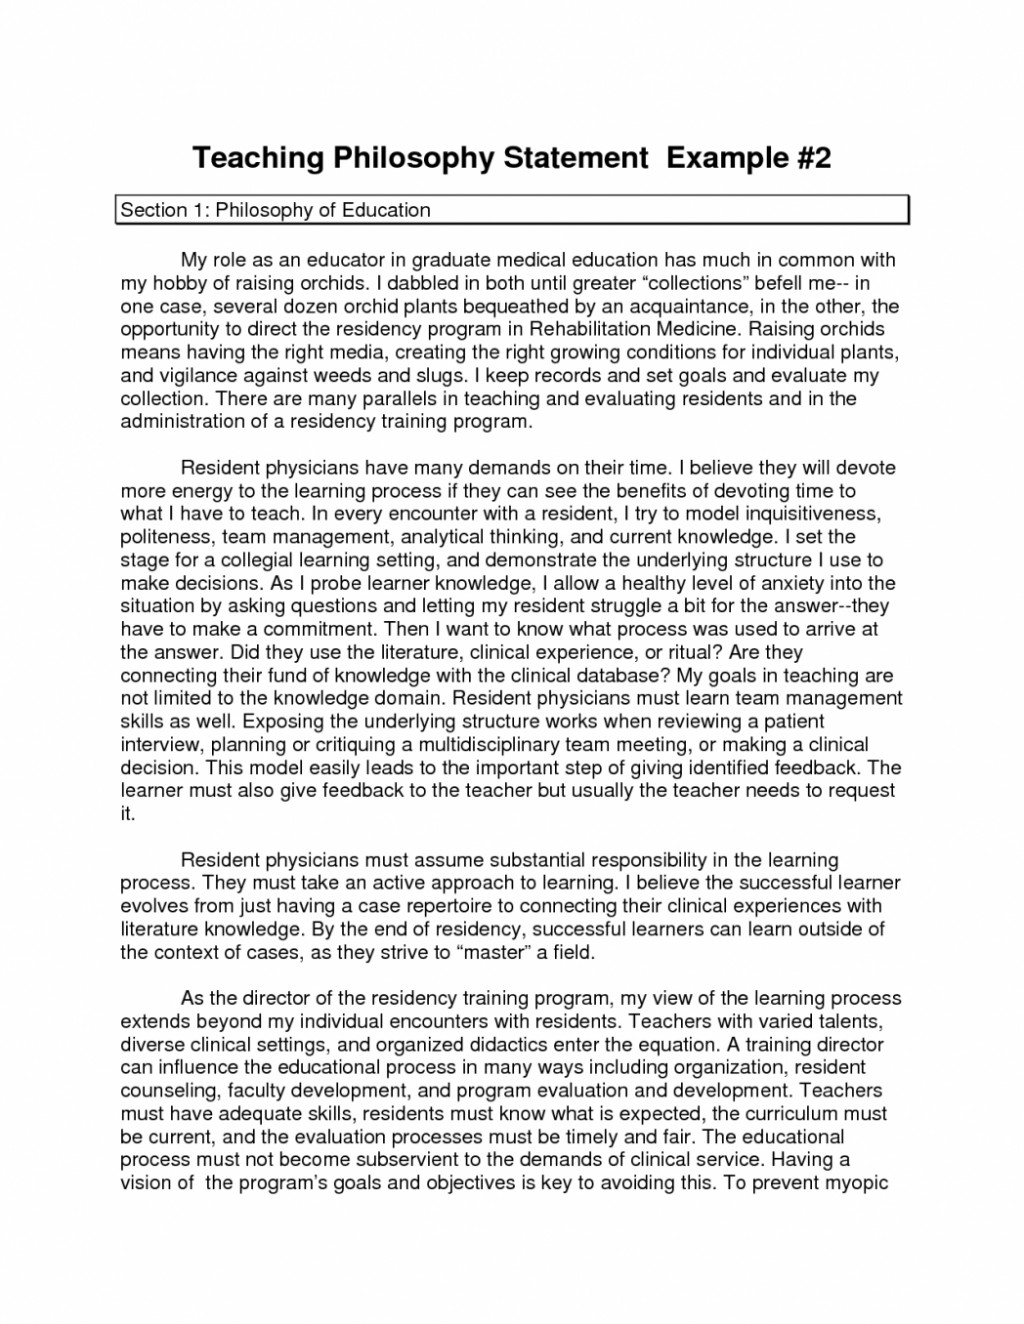 007 Exploratory Essay Example Definition Writing An Introduction Examples Statement Of Teaching Philosophy Mg5 Free Thesis Topics Research Remarkable Analysis Large